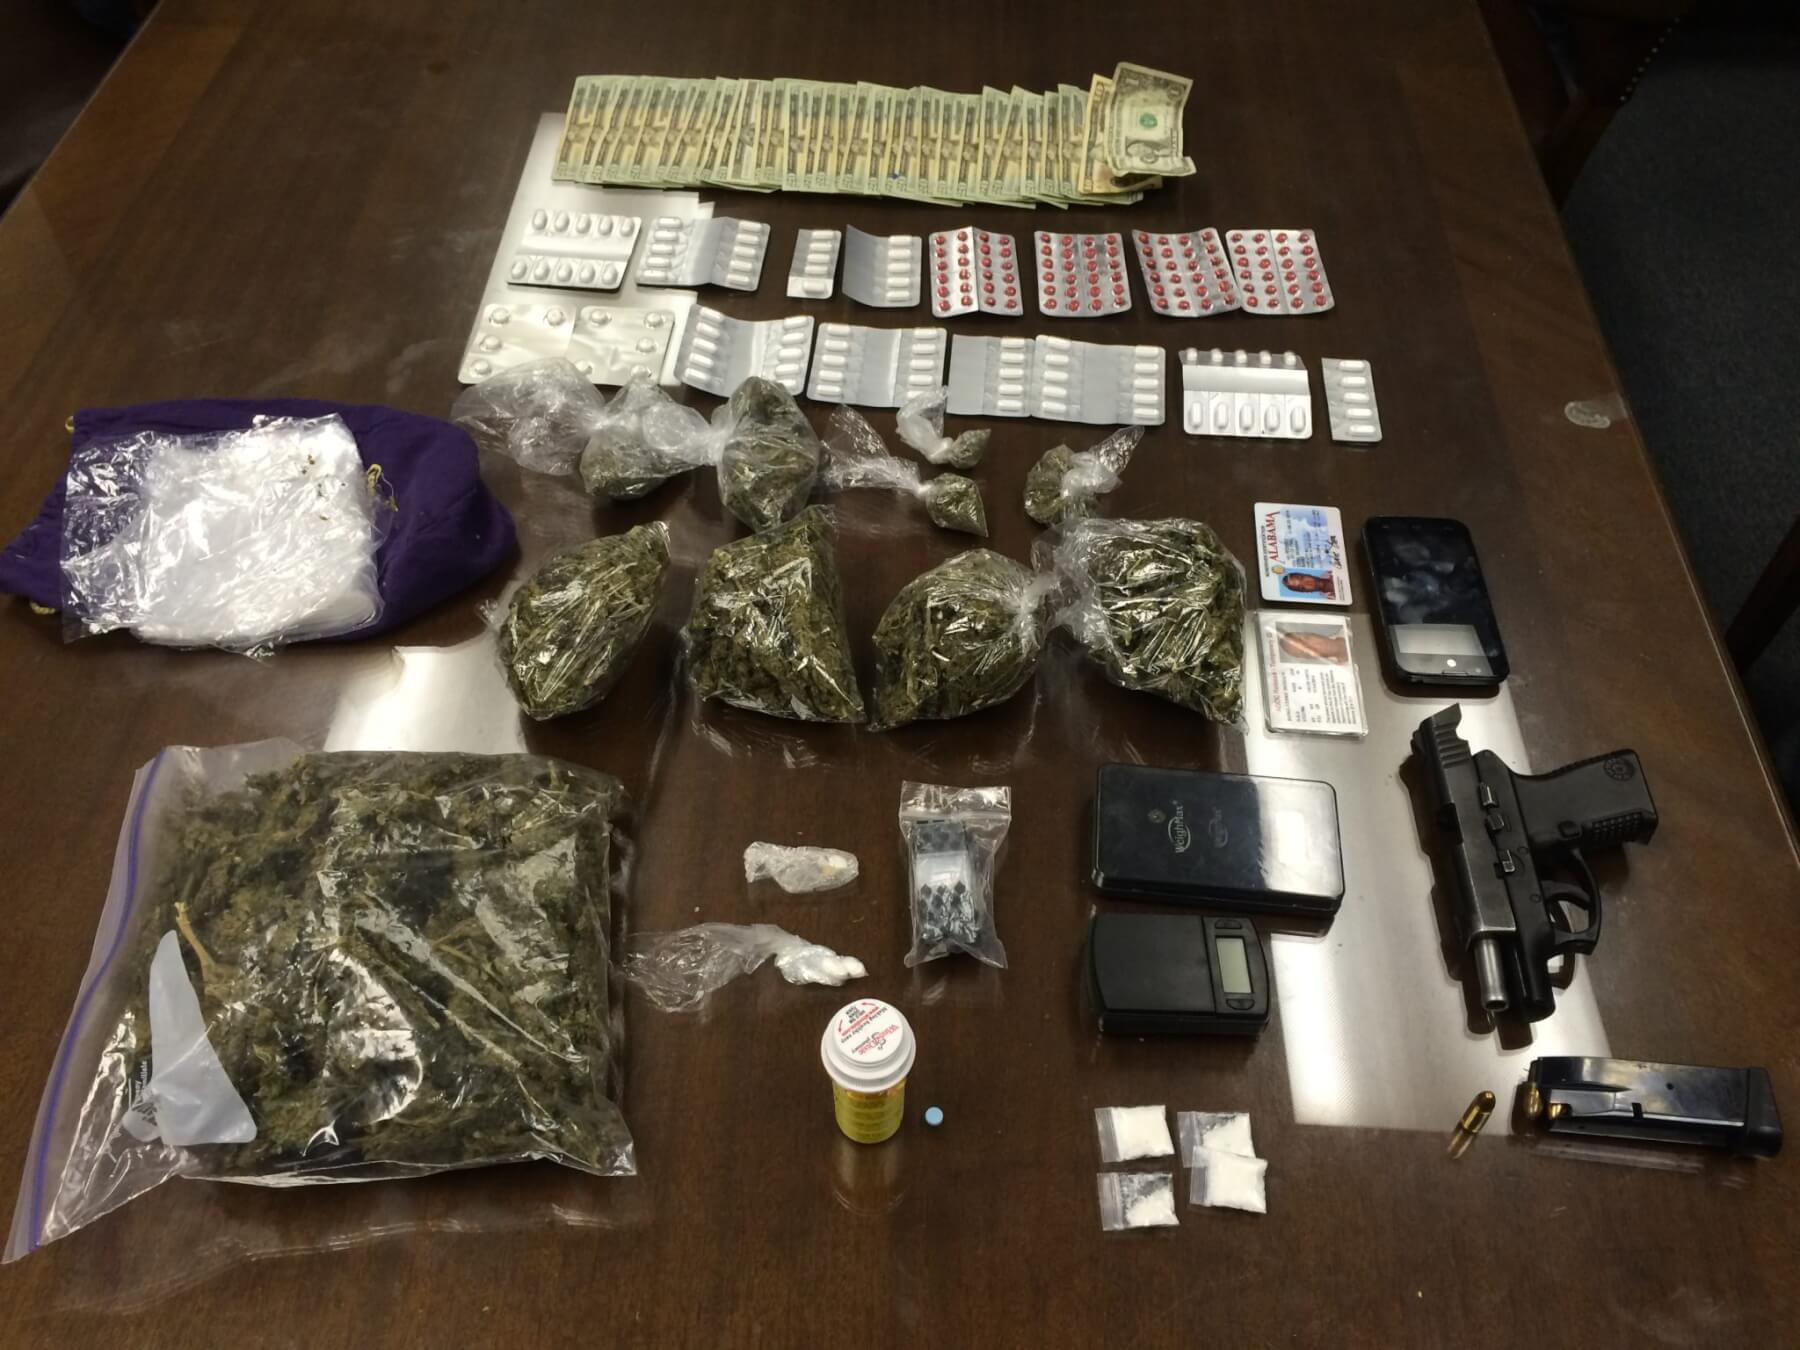 Mobile police remove meth, marijuana from Econolodge